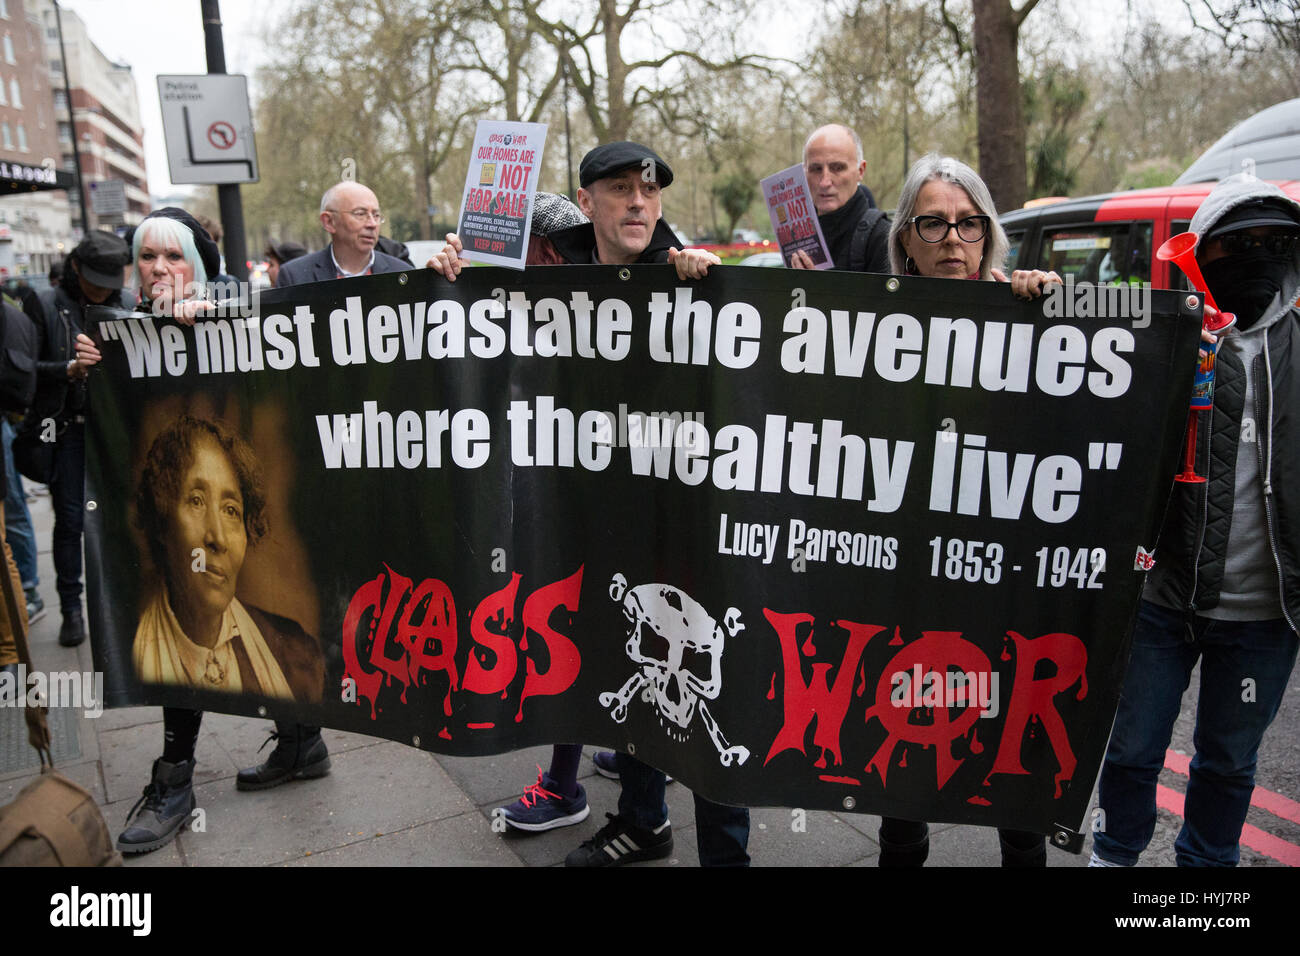 London, UK. 4th April, 2017. Activists campaigning for social housing and against gentrification and social cleansing - Stock Image